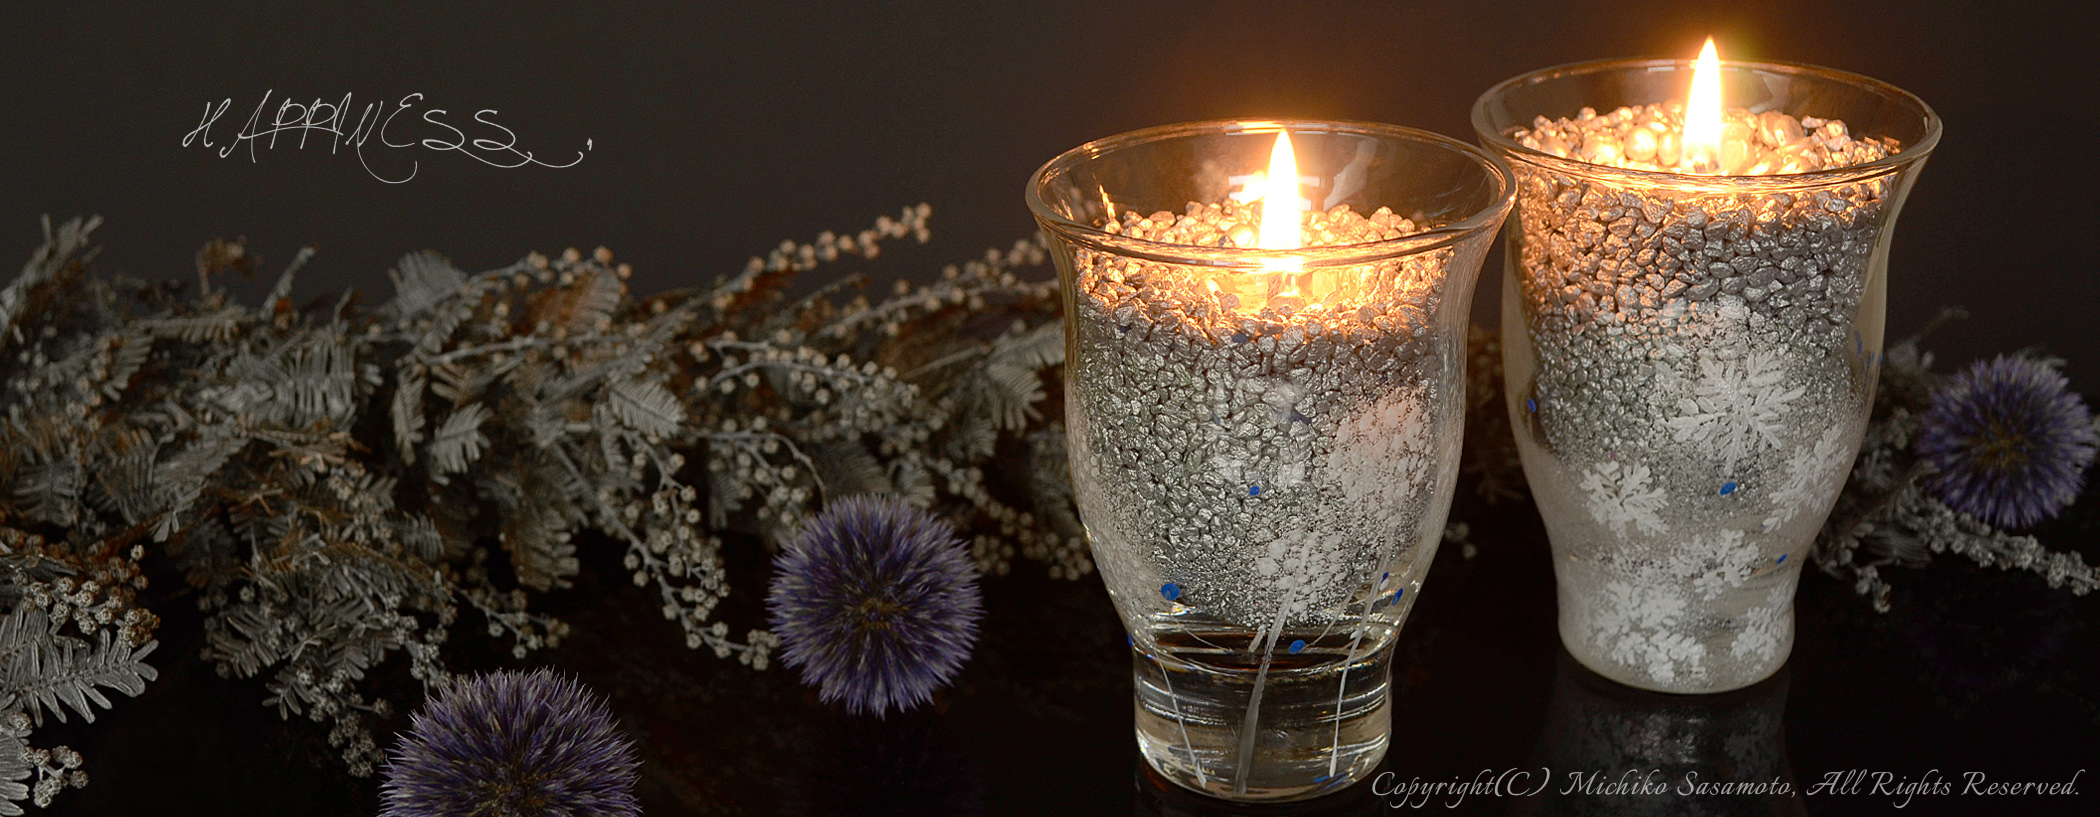 candle photo